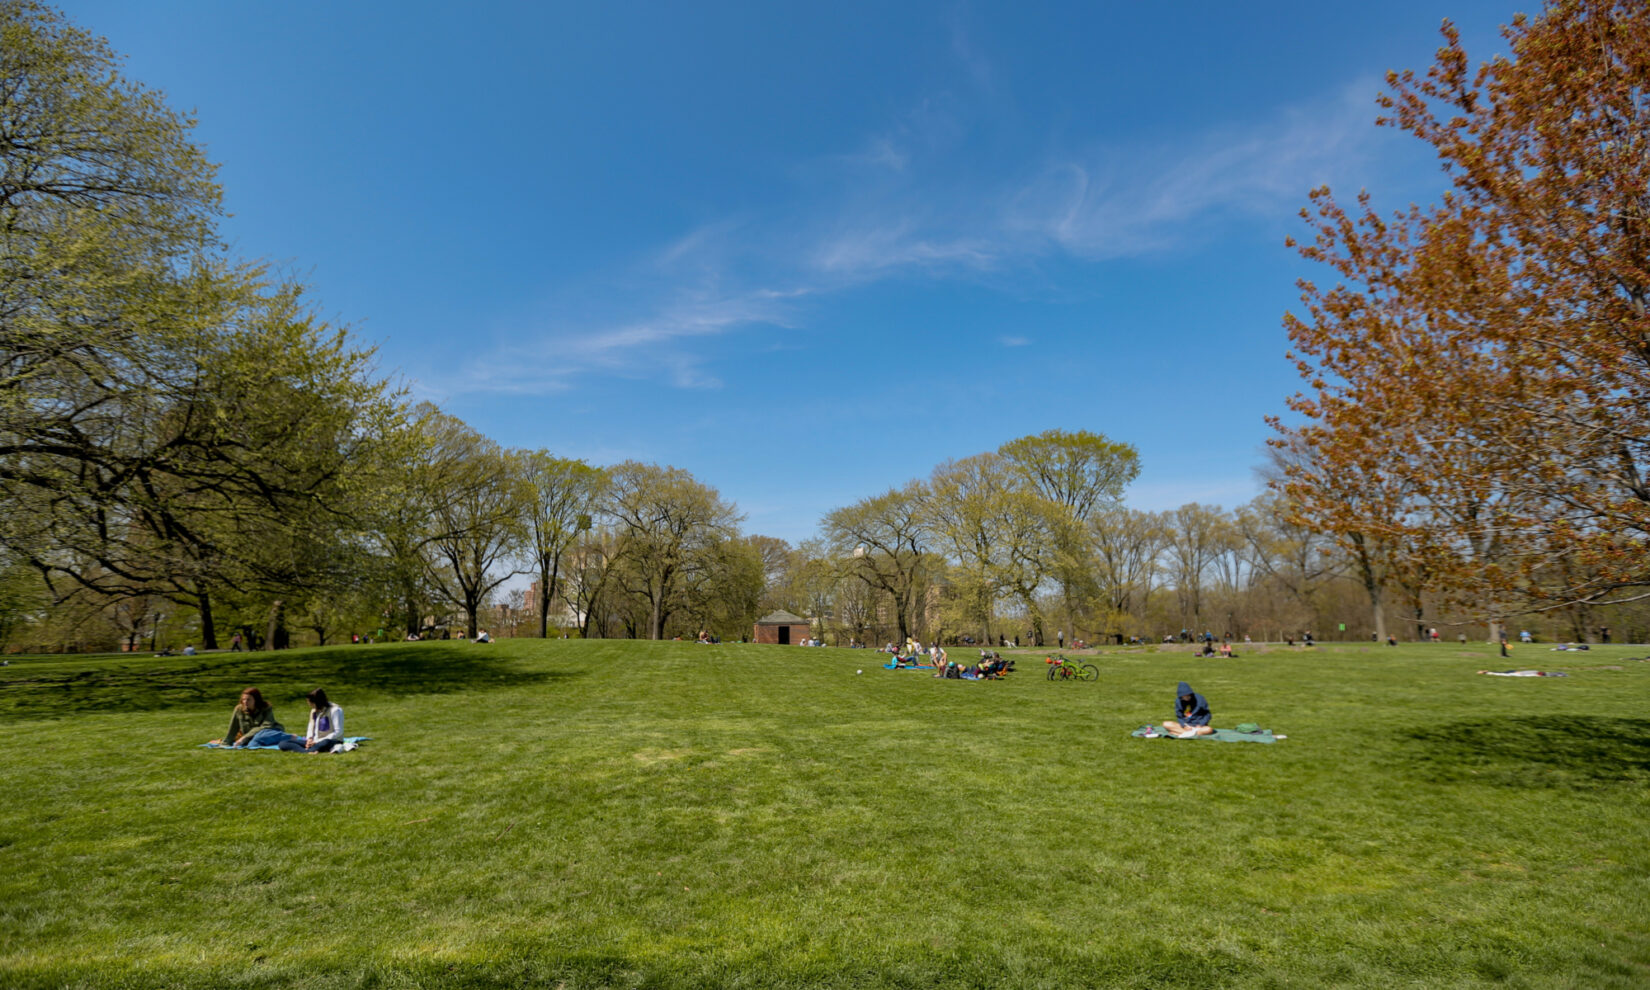 A apringtime view of the lawn with scattered parkgoers enjoying the weather